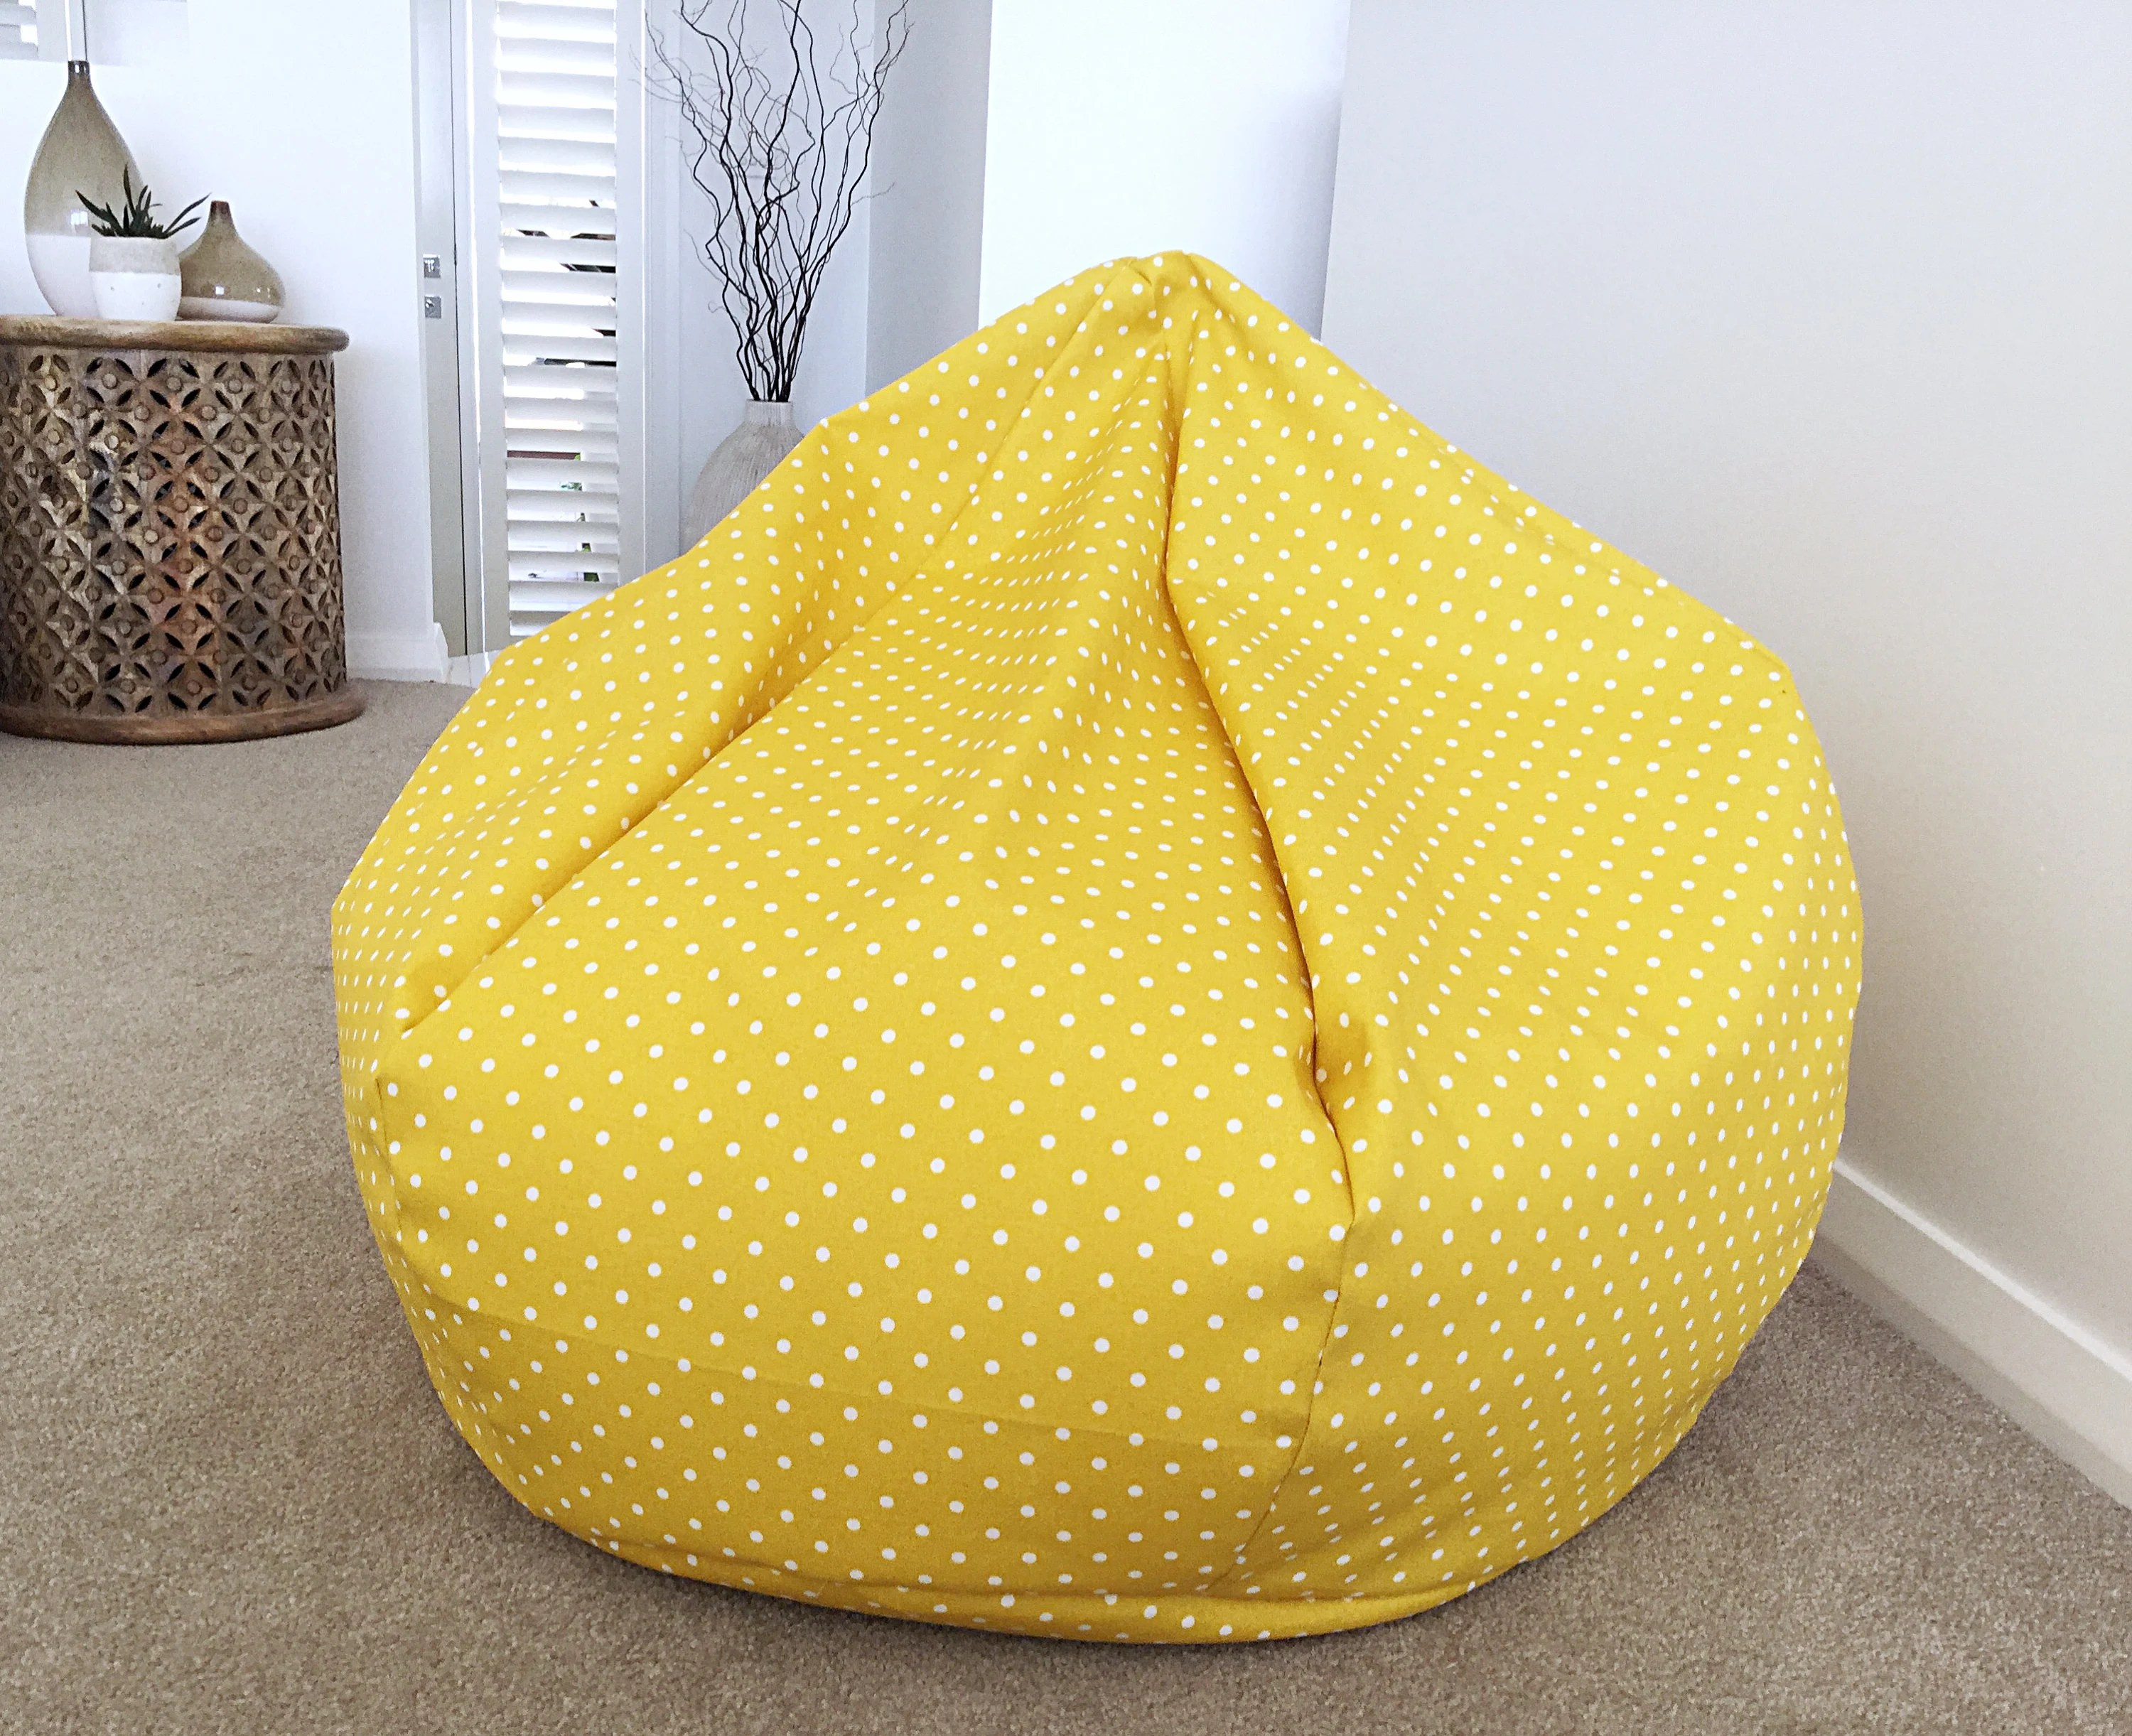 Bean Bag Chair Covers Only Bean Bag Cover Indoor Outdoor Bean Bag Polka Dots Kids Adults Bean Bag Cover Indoor Outdoor Bean Bag Yellow Polka Dot Bean Bag